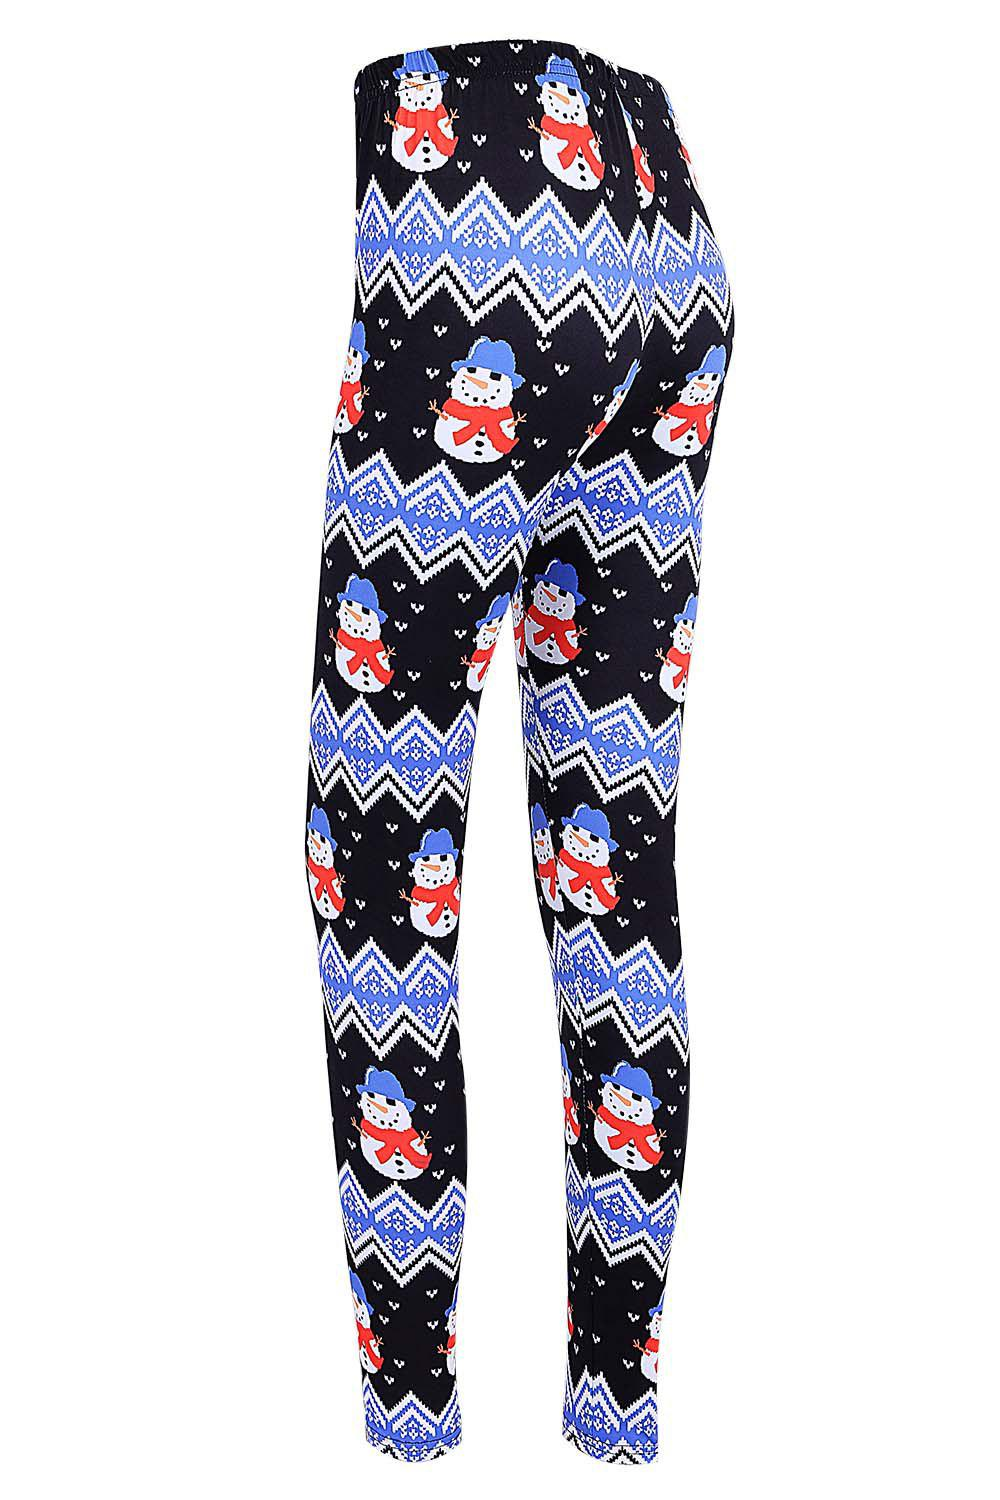 High Waisted Snowman Print Christmas Leggings - BLACK 2XL